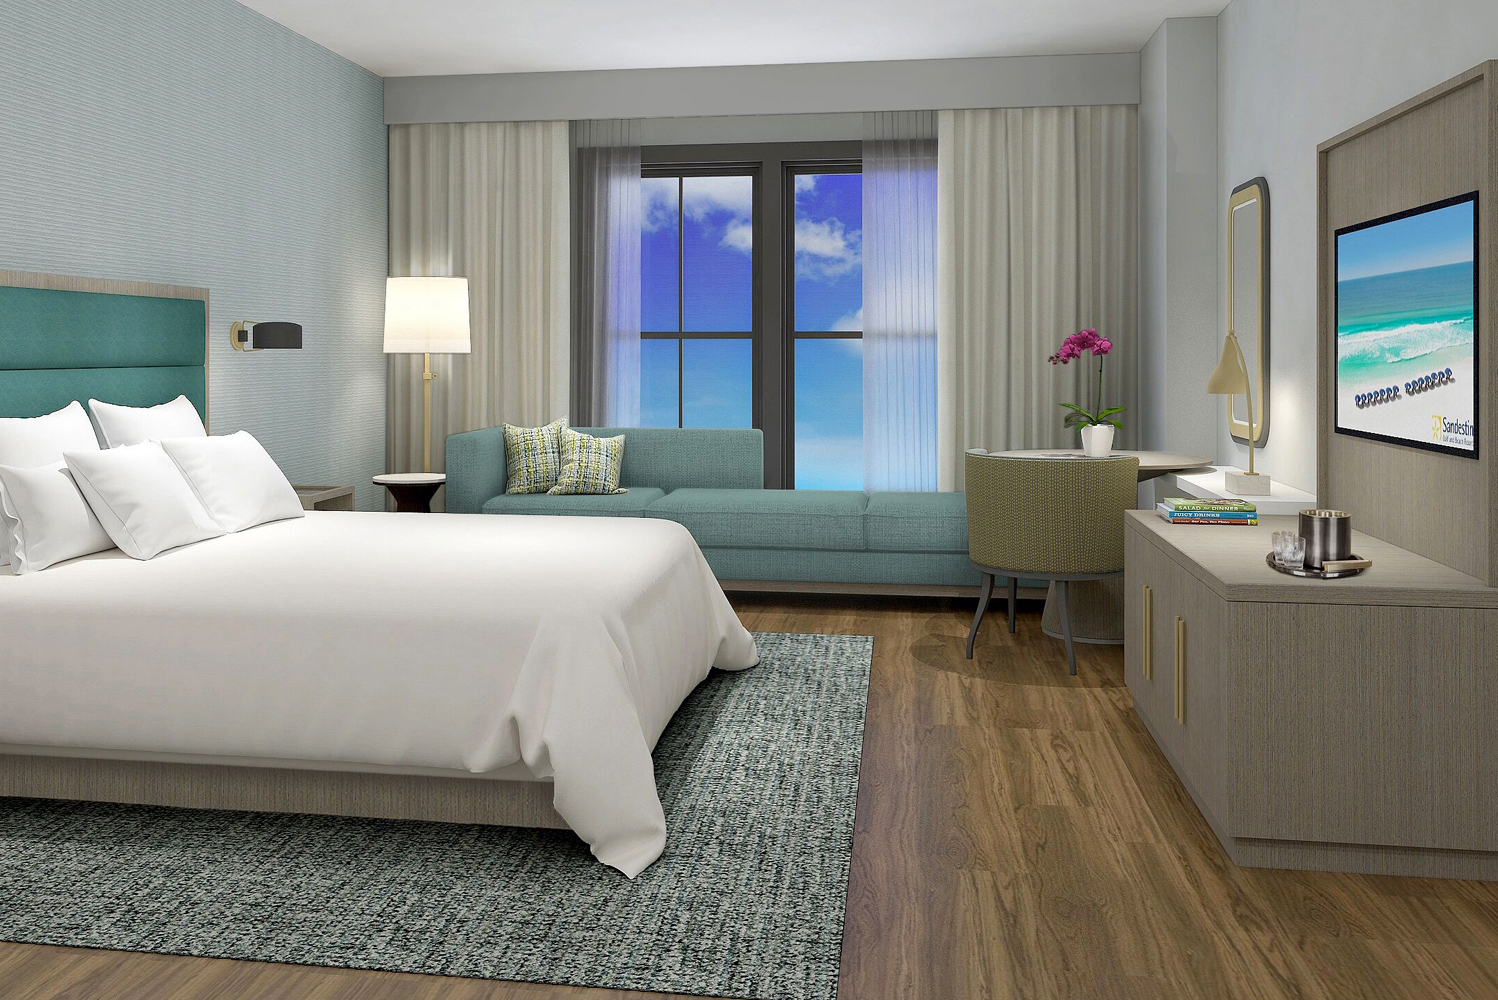 Design Continuum, an interior design firm, worked with Sara Becnel to conceive the interiors for Hotel Effie.